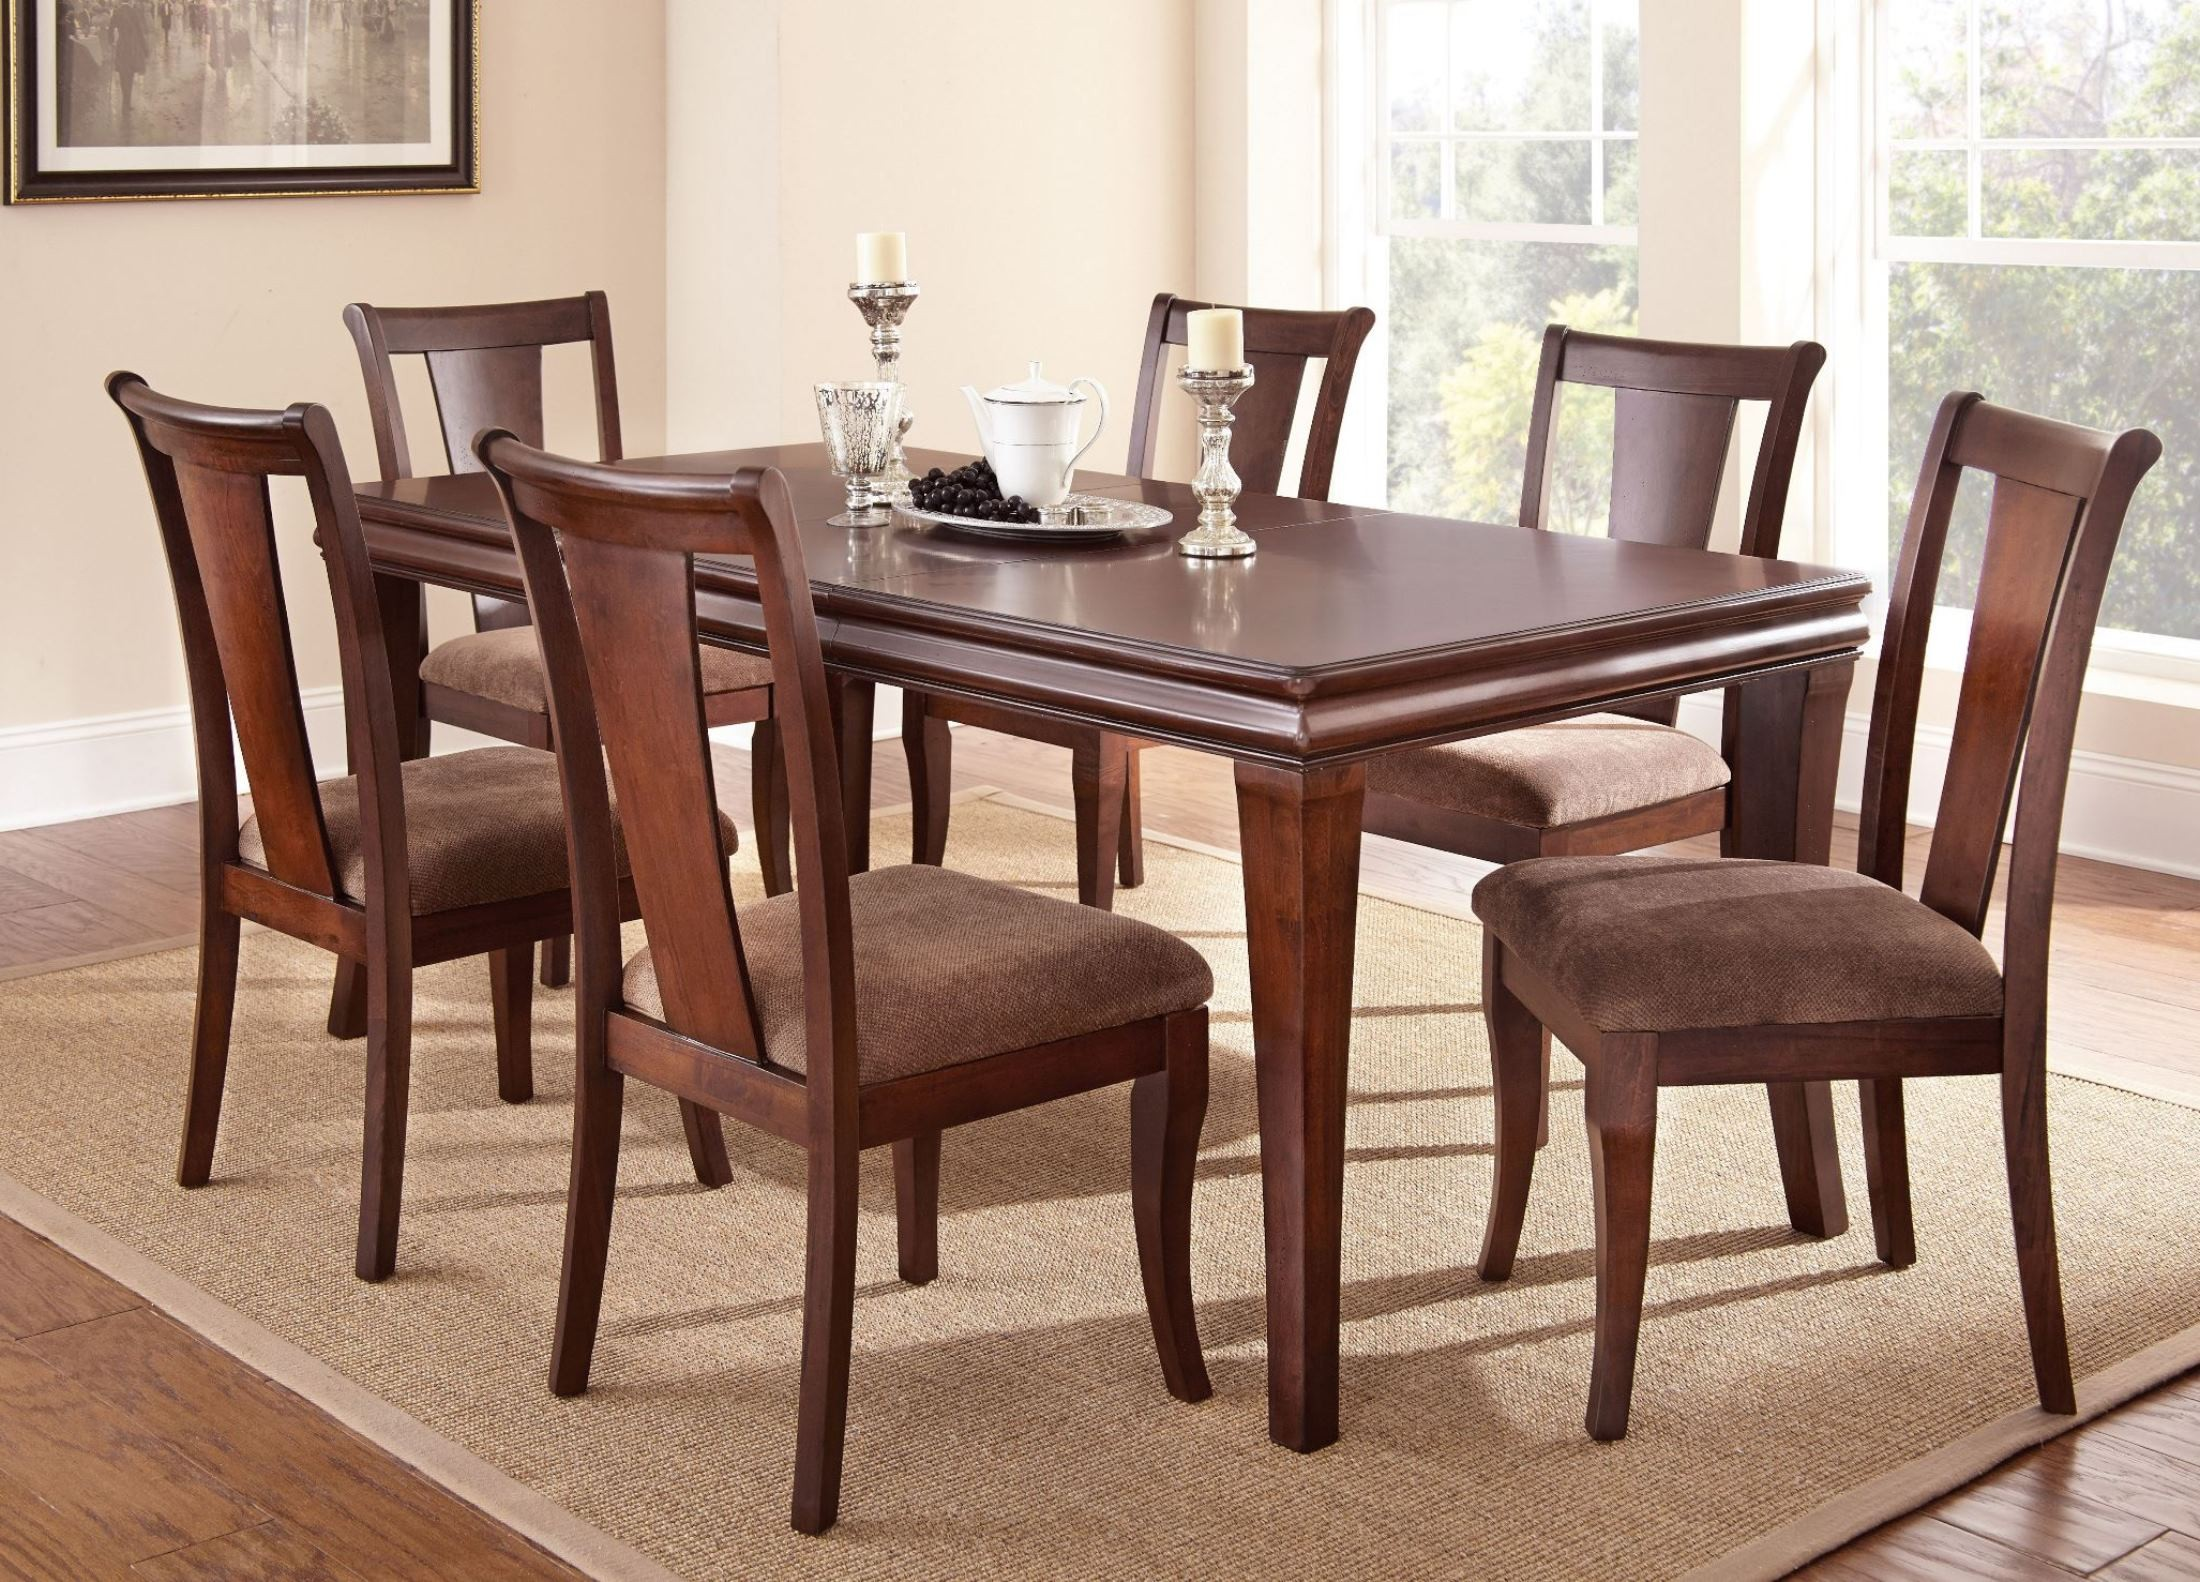 Aubrey Medium Brown Extendable Rectangular Dining Room Set From Steve Silver